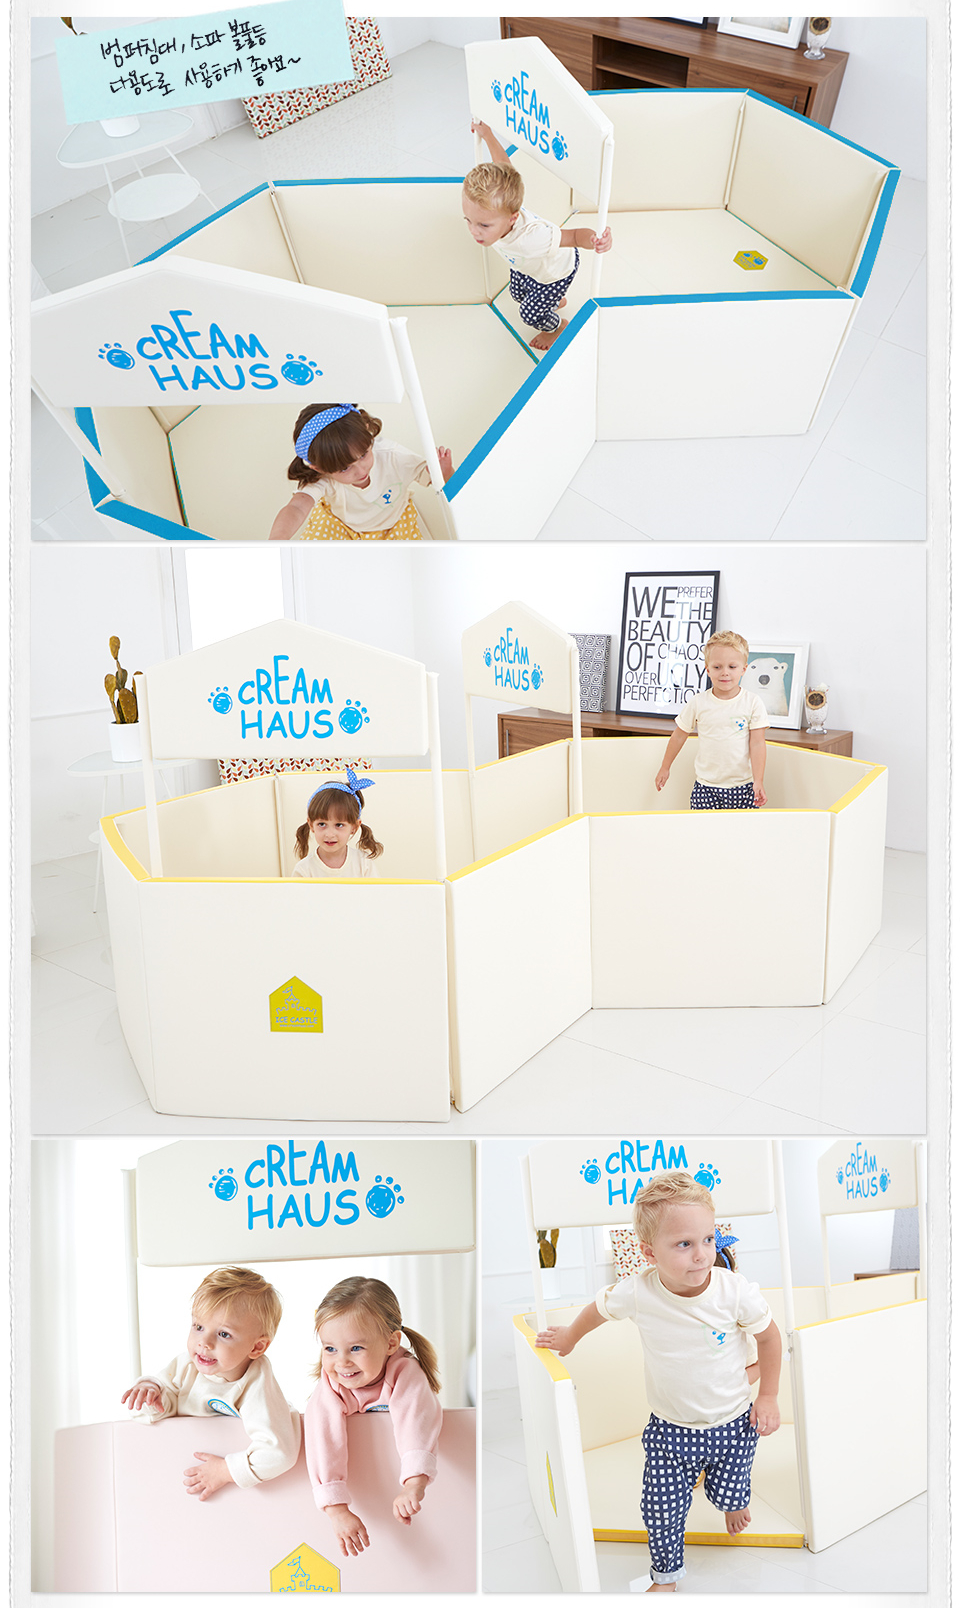 Creamhaus Ice Castle - Offer children a wonderful and safe place at home